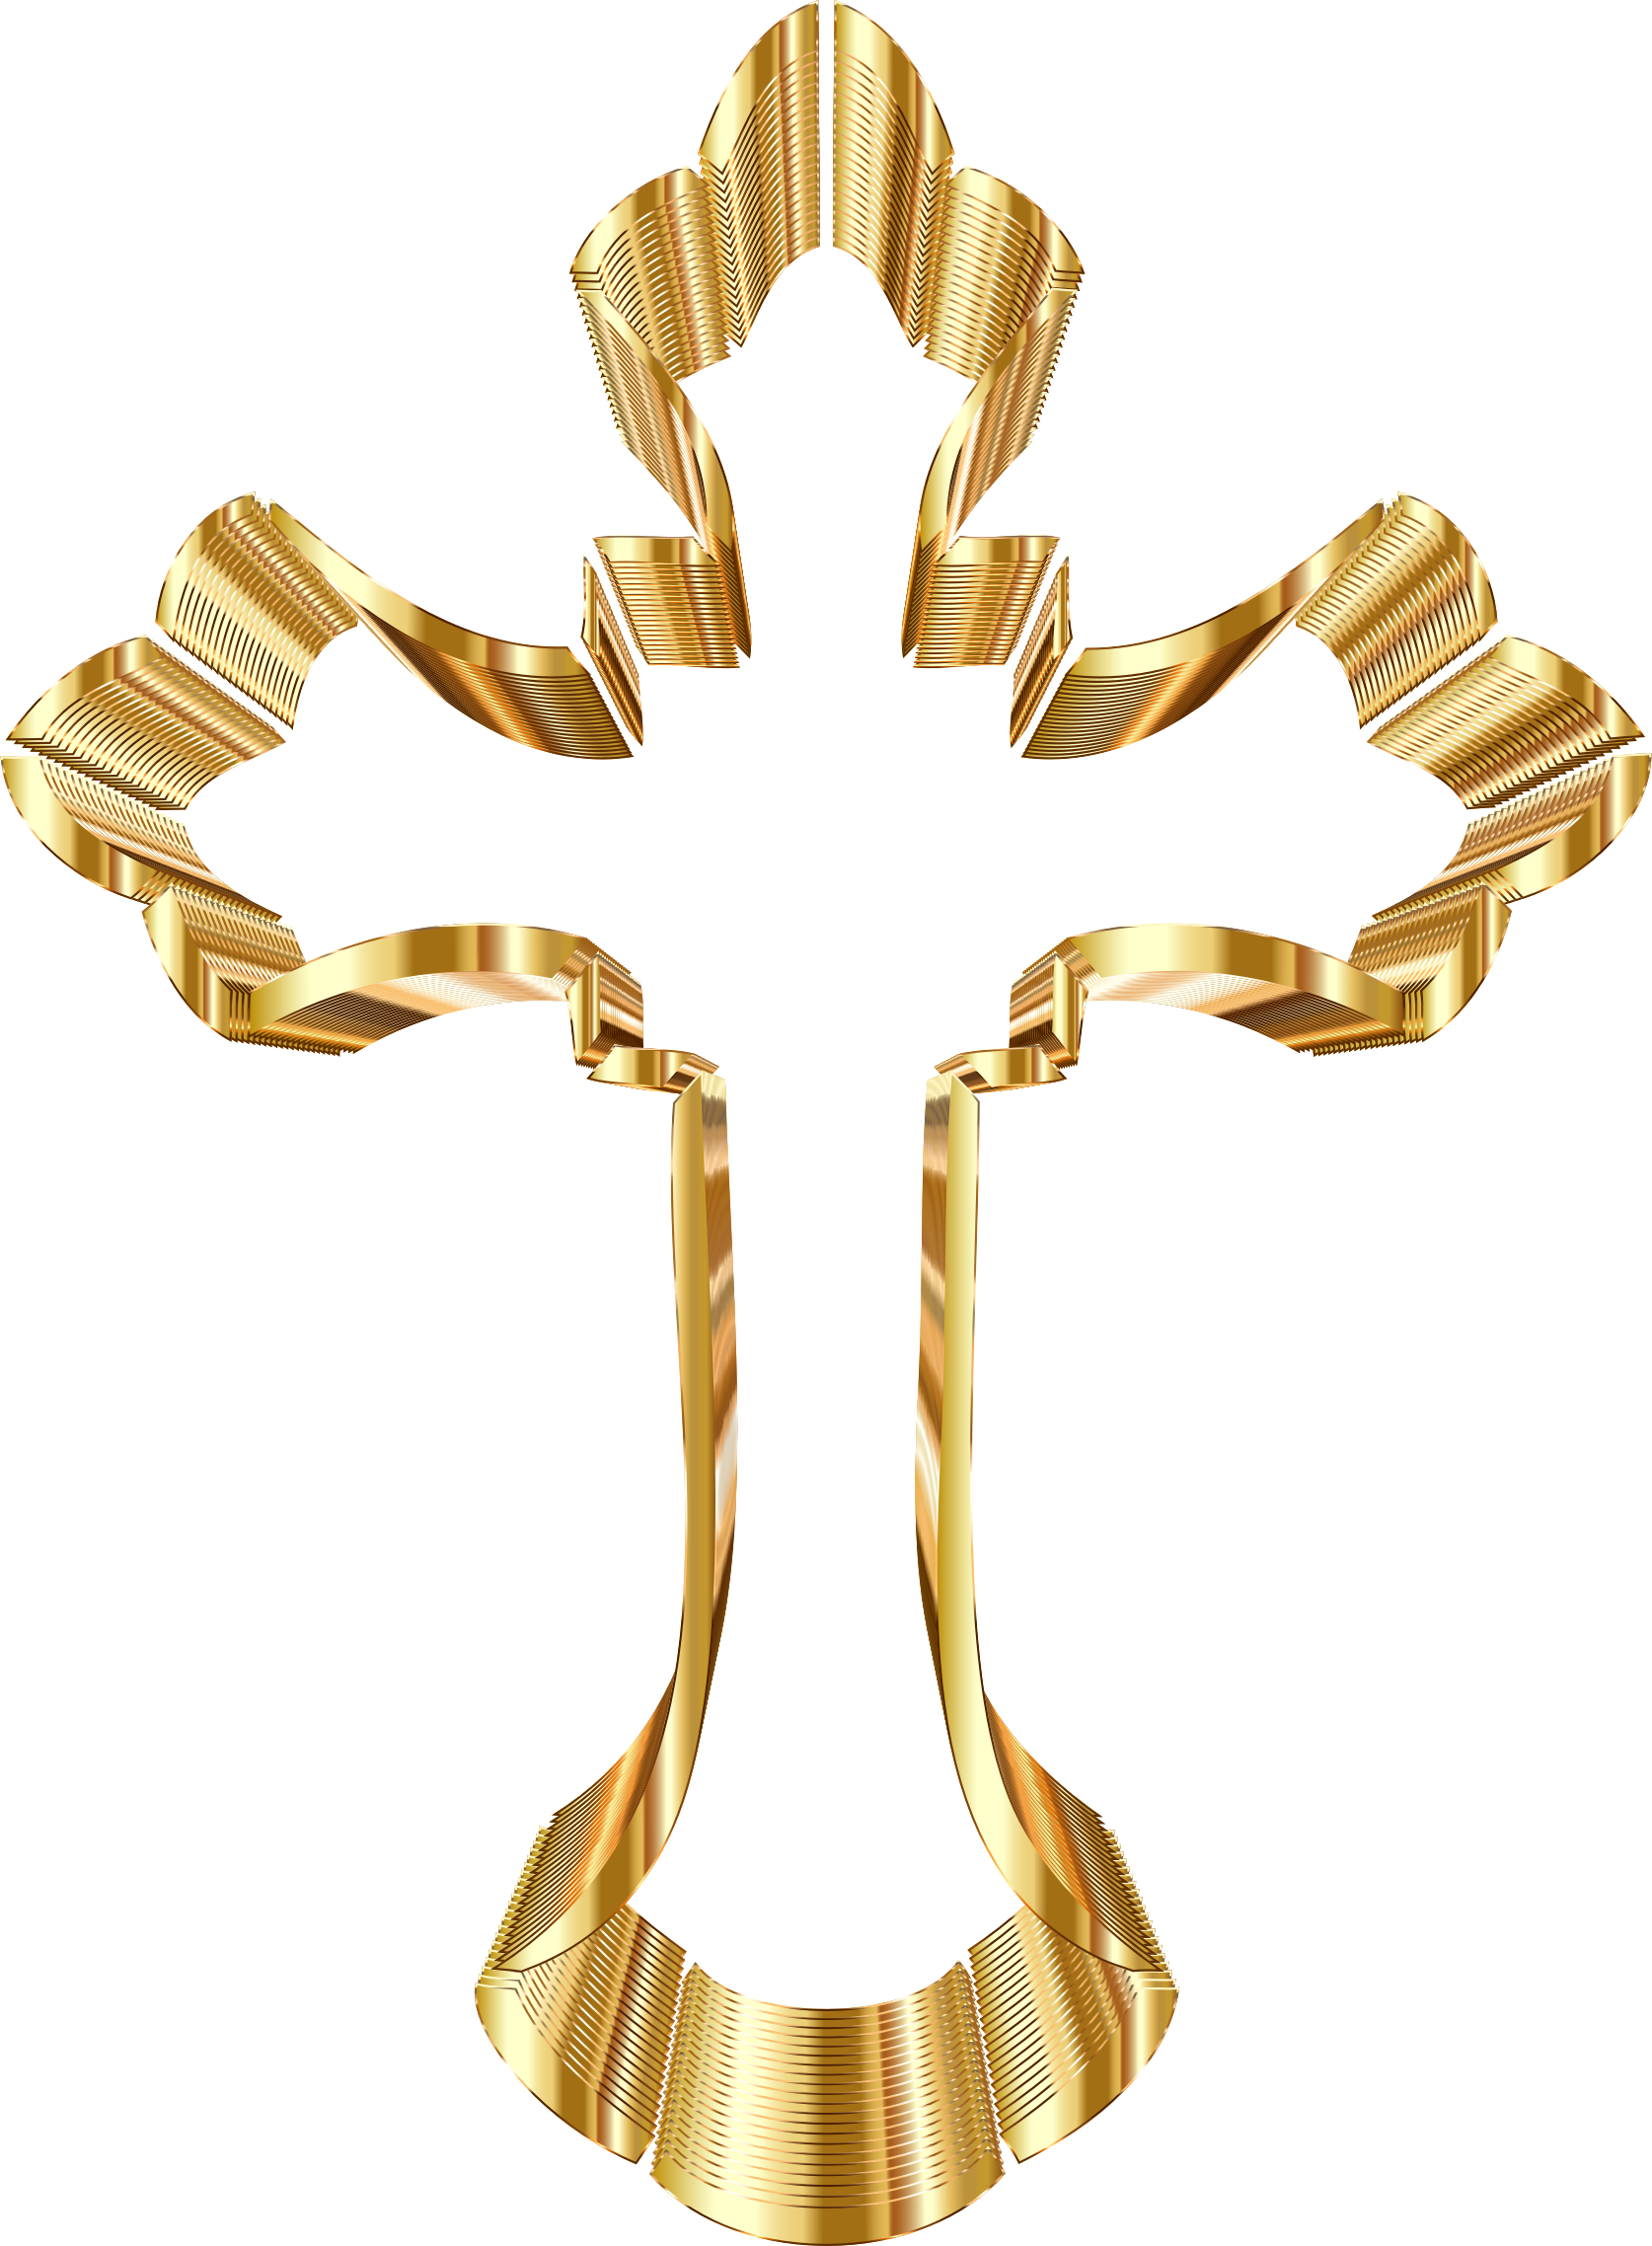 Gold Ornate Cross No Background by GDJ